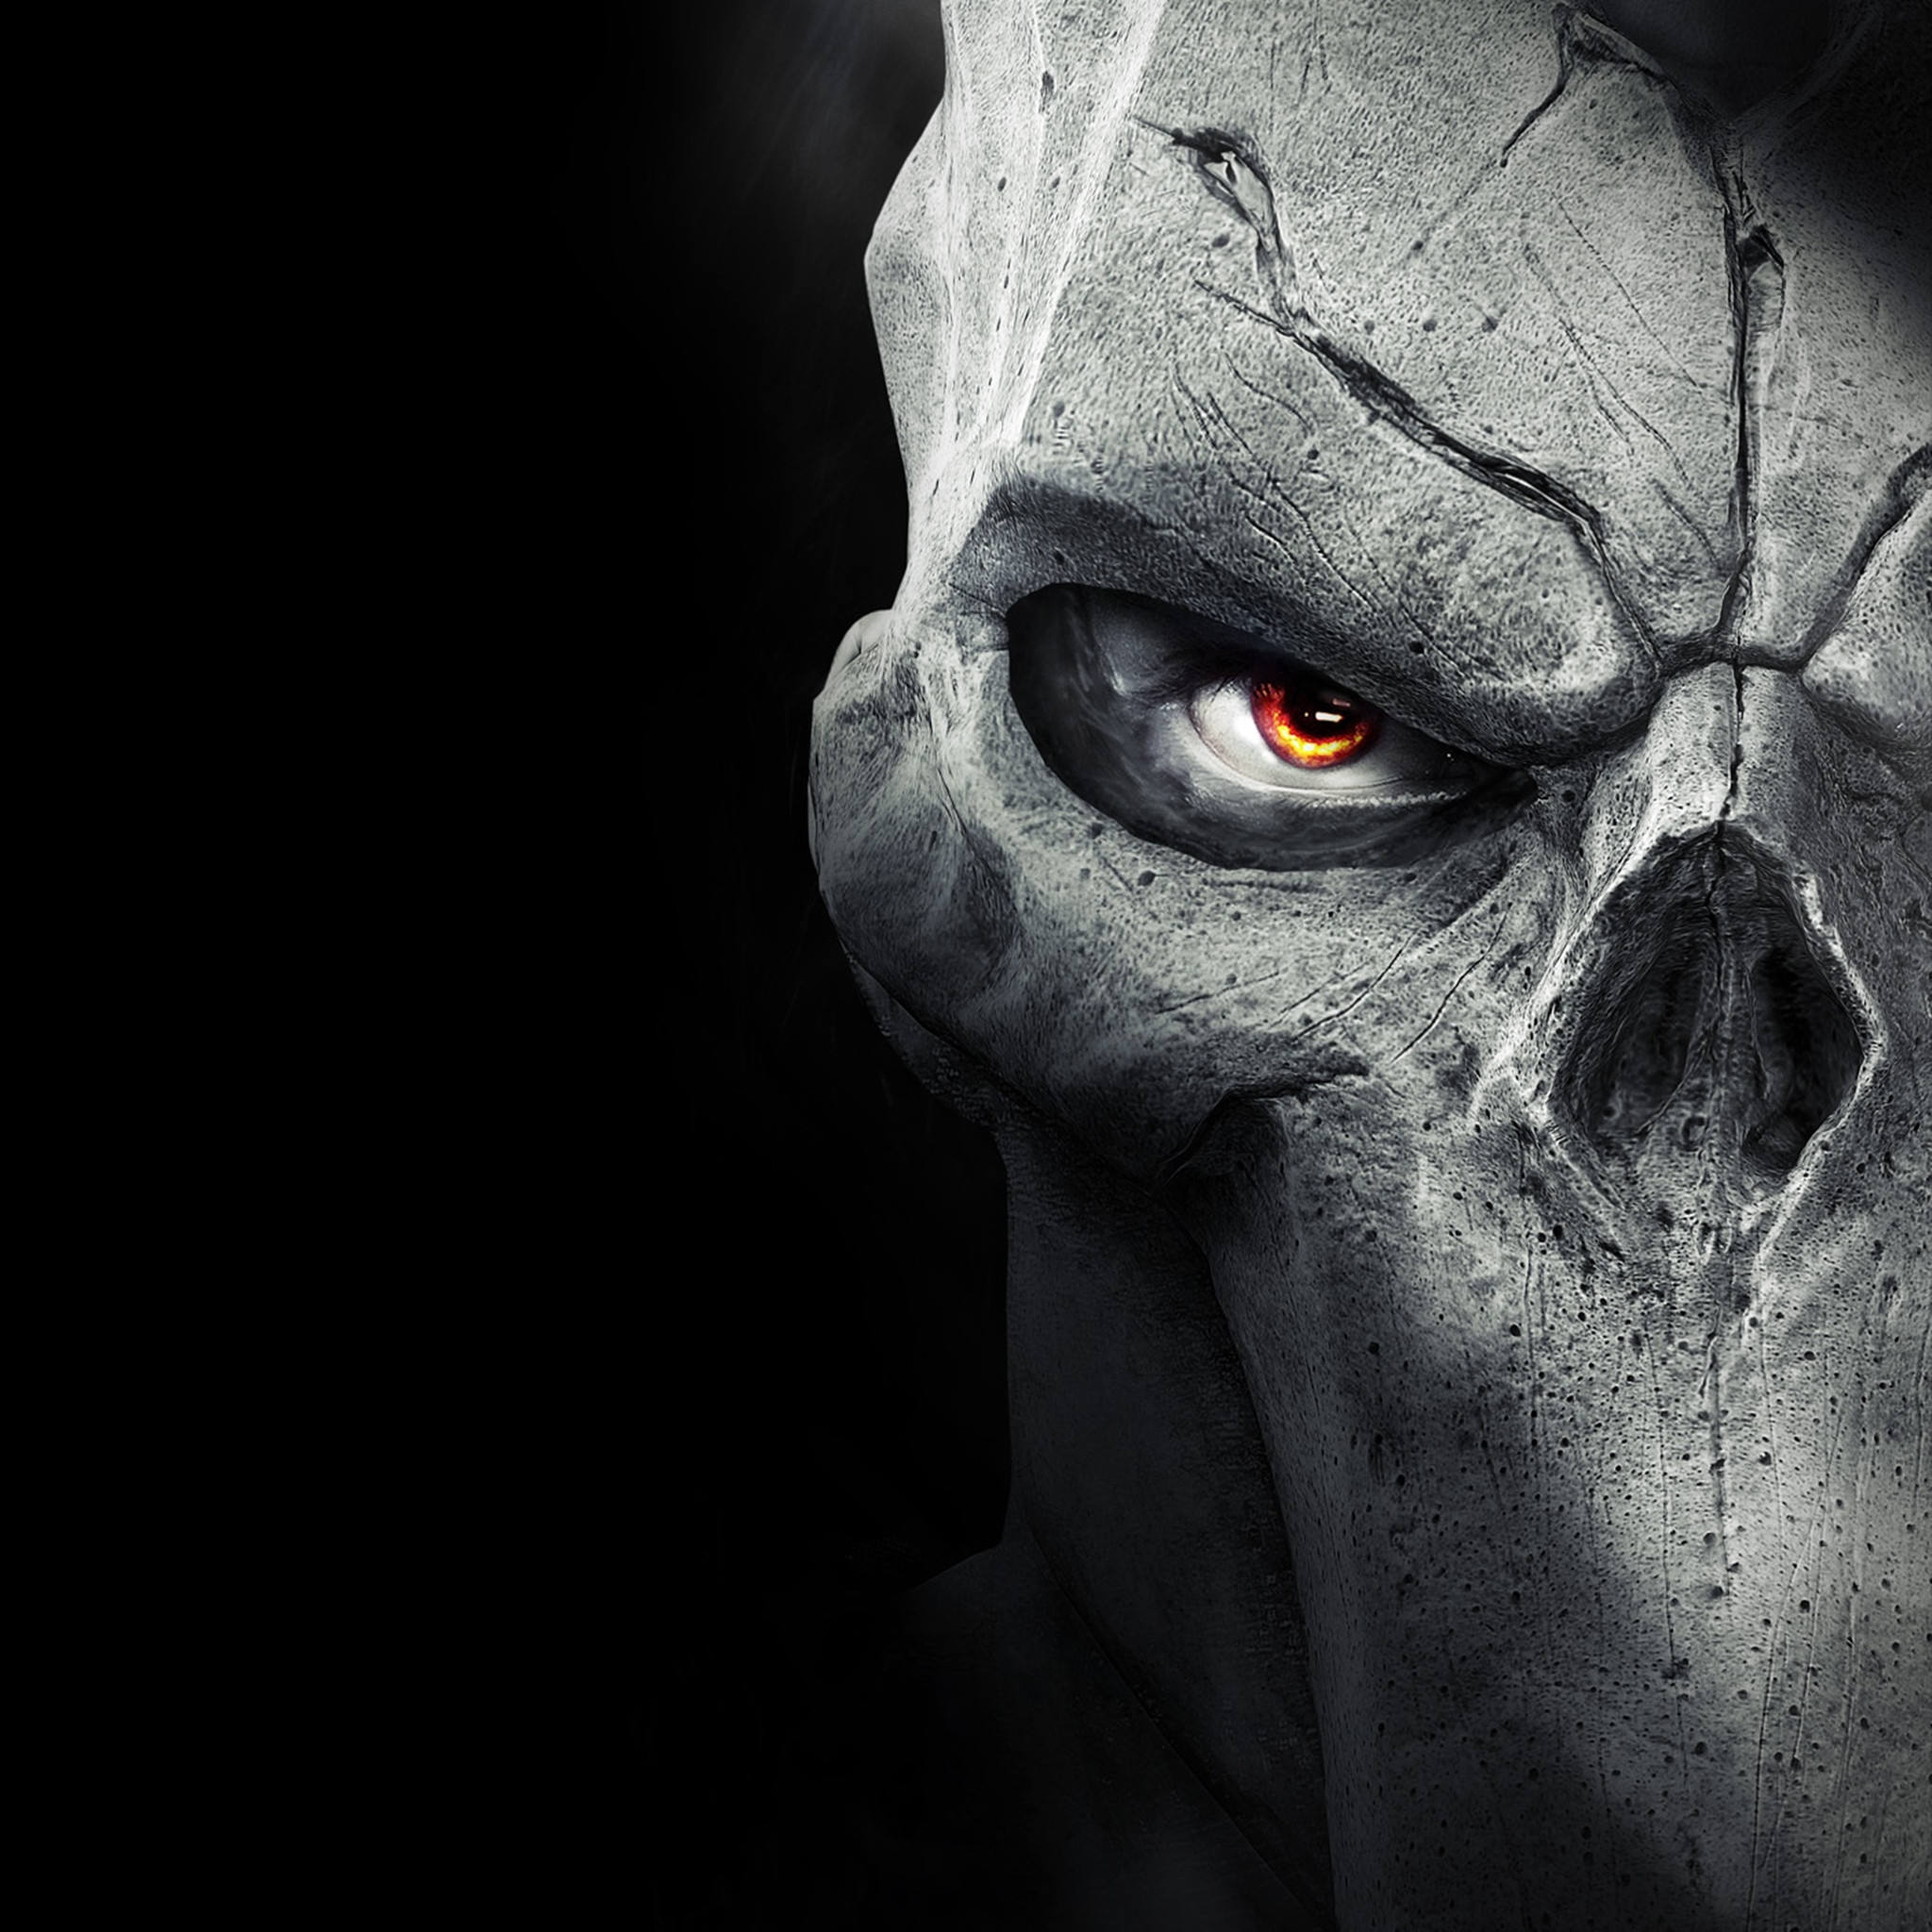 Badass Wallpapers: Badass Skull Wallpaper (68+ Images